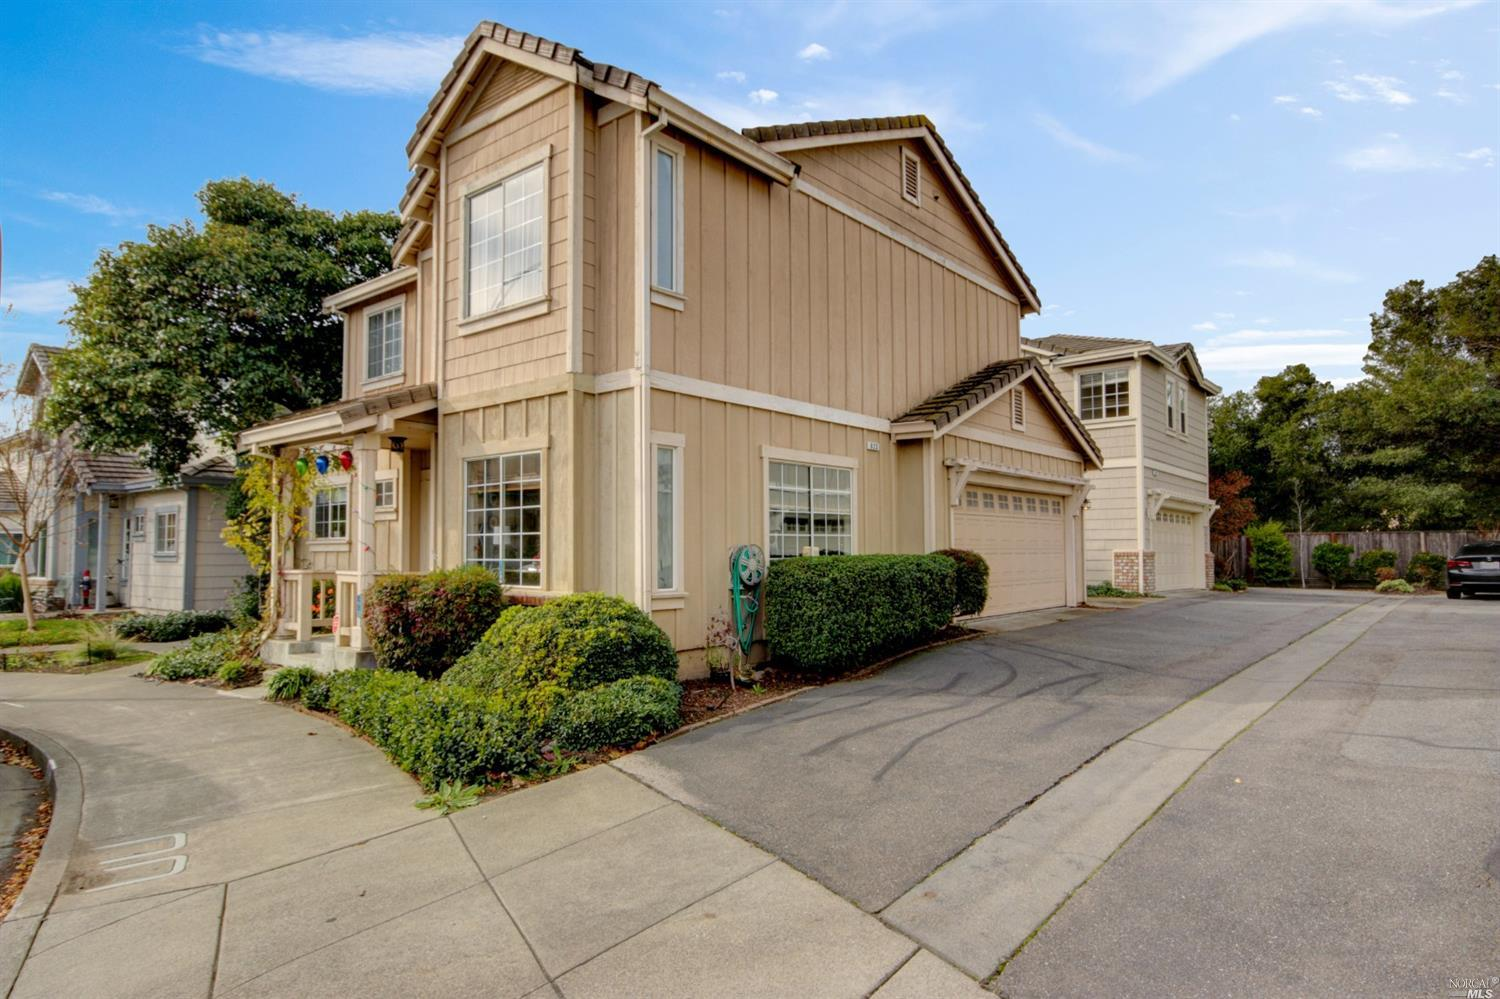 623 Searles Way, Petaluma, CA